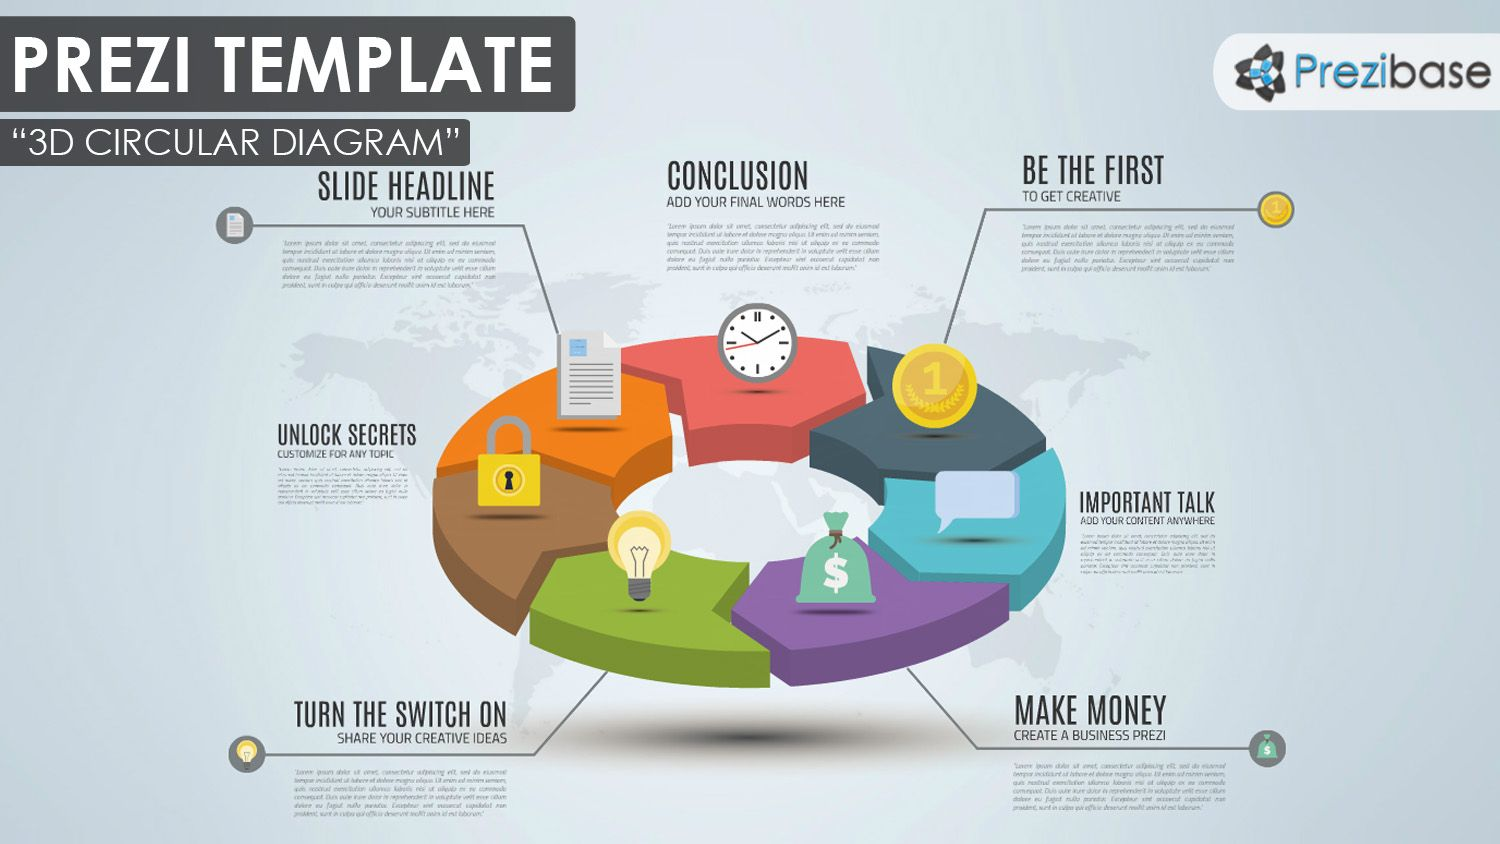 hight resolution of colorful and creative business 3d circular pie chart diagram prezi template for presentations